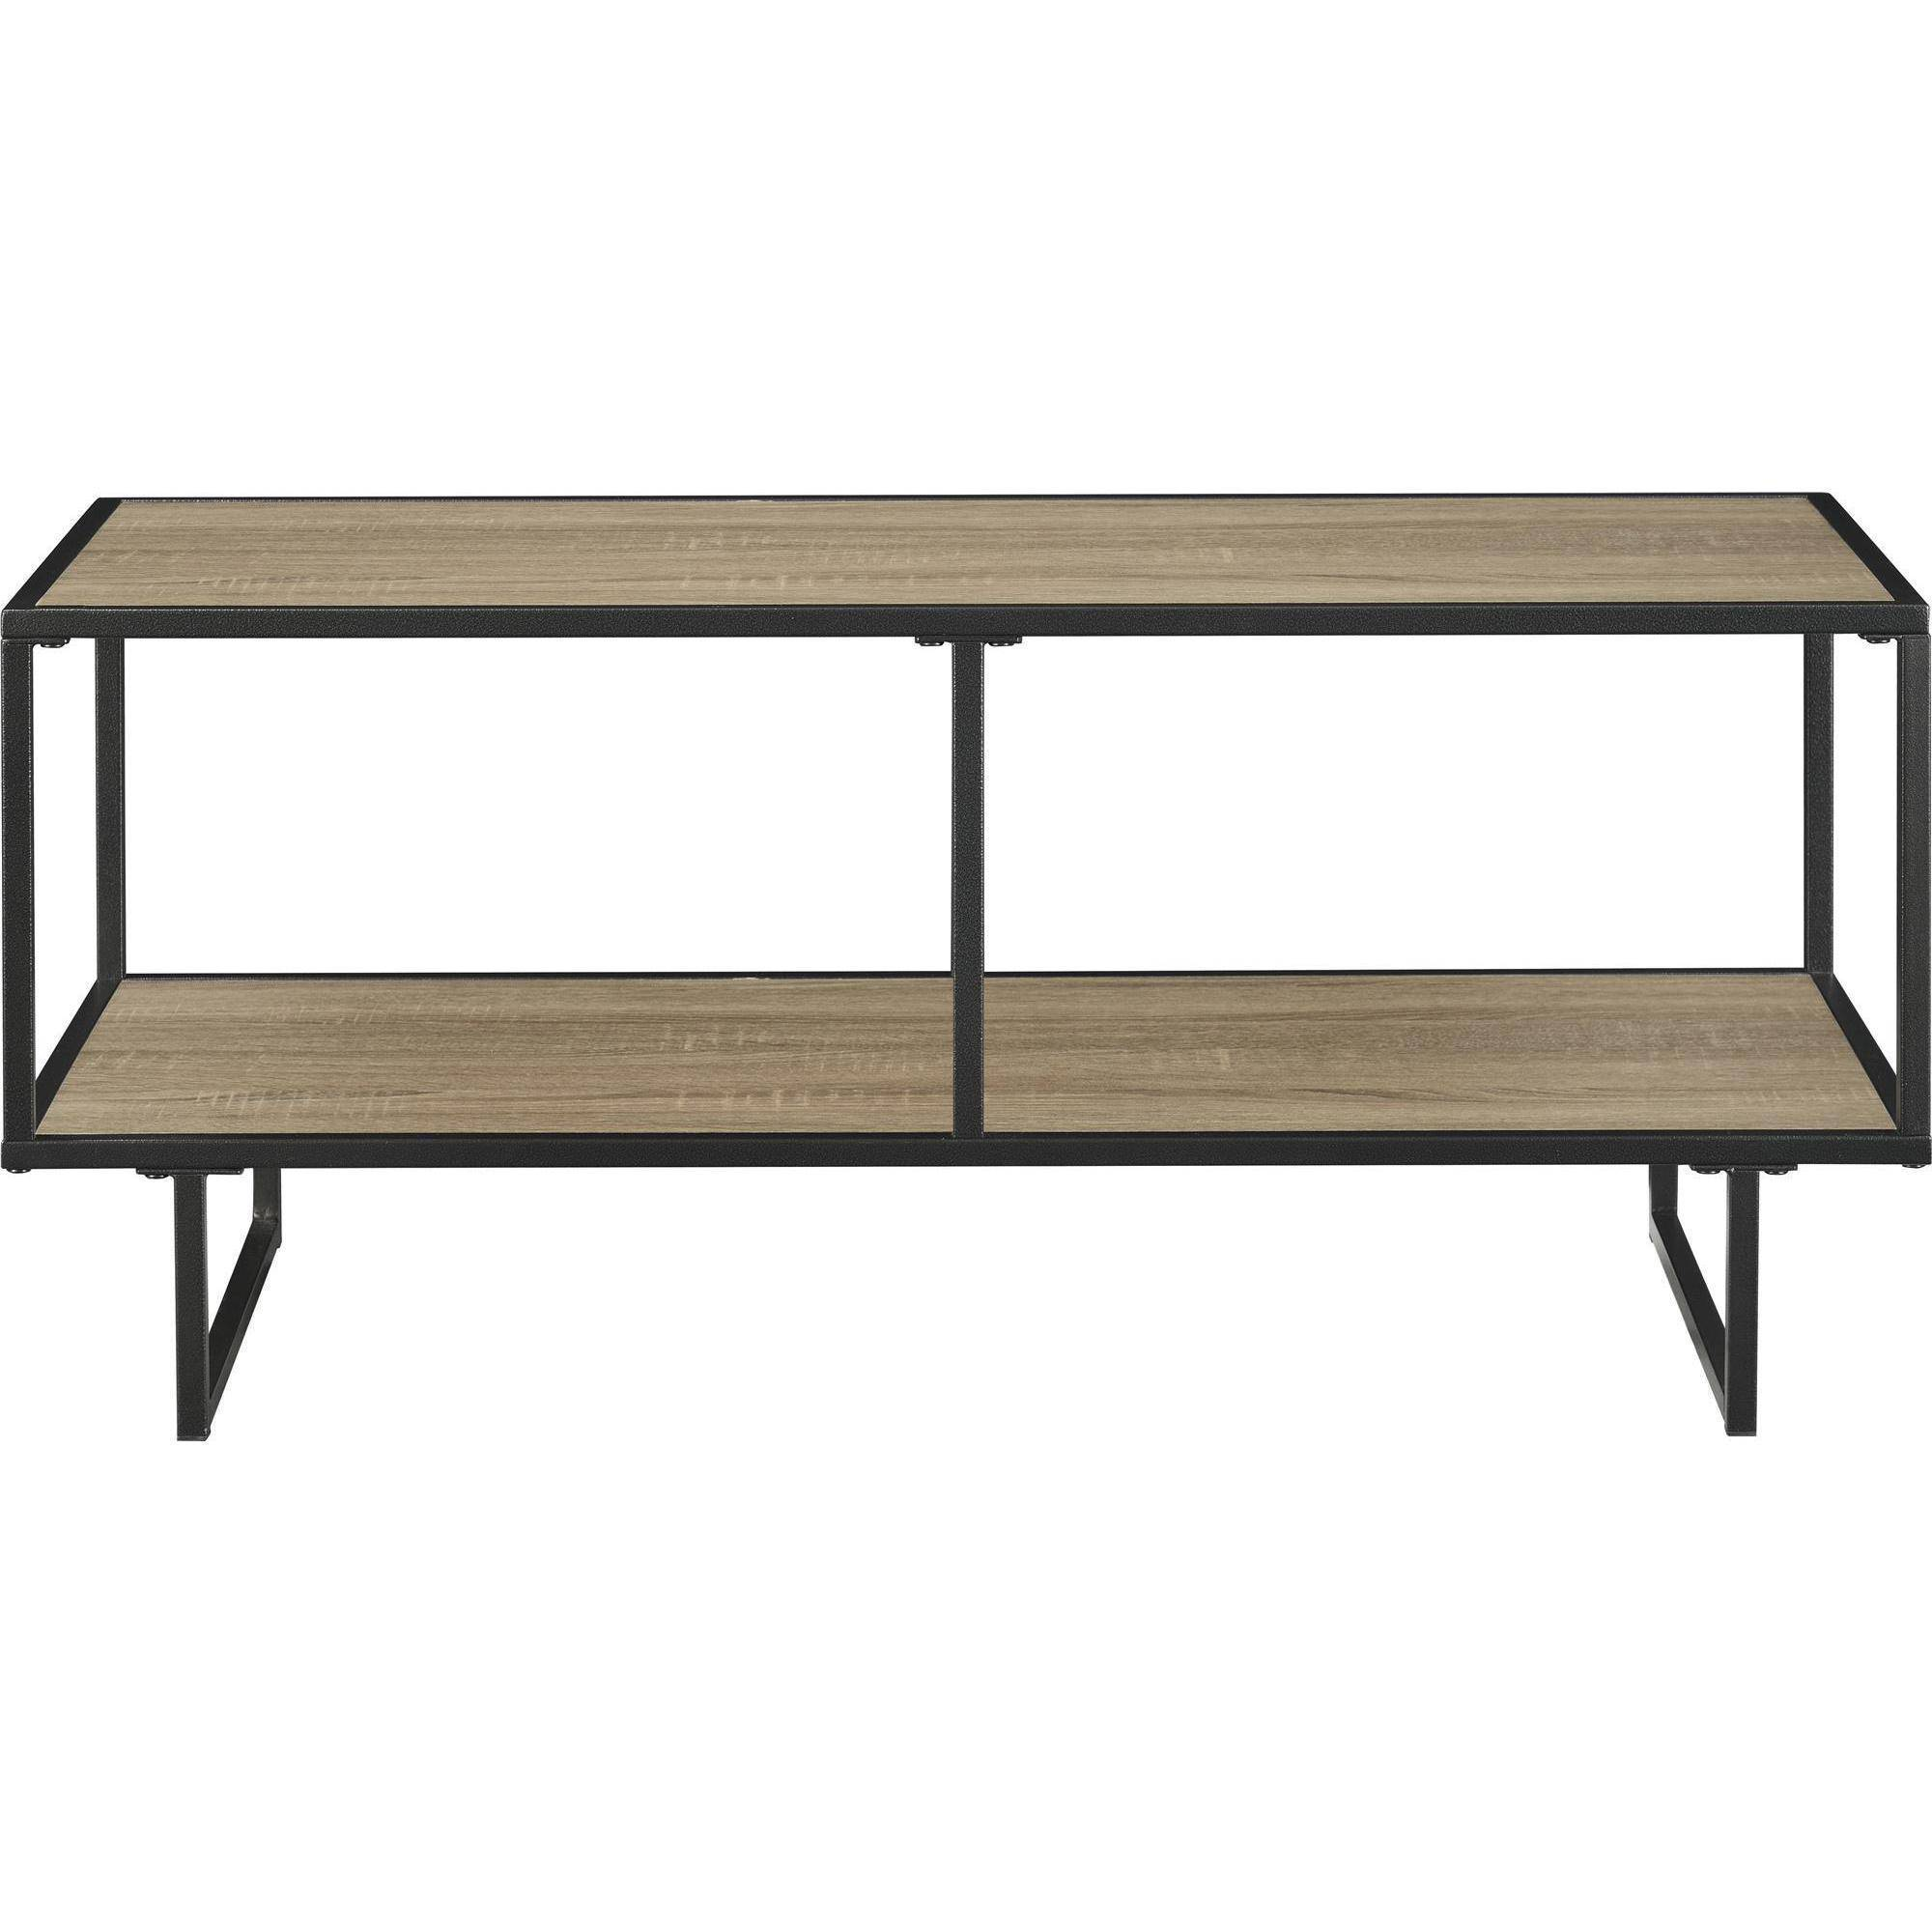 Altra Furniture Emmett 1 Shelf TV Stand Coffee Table in Sonoma Oak